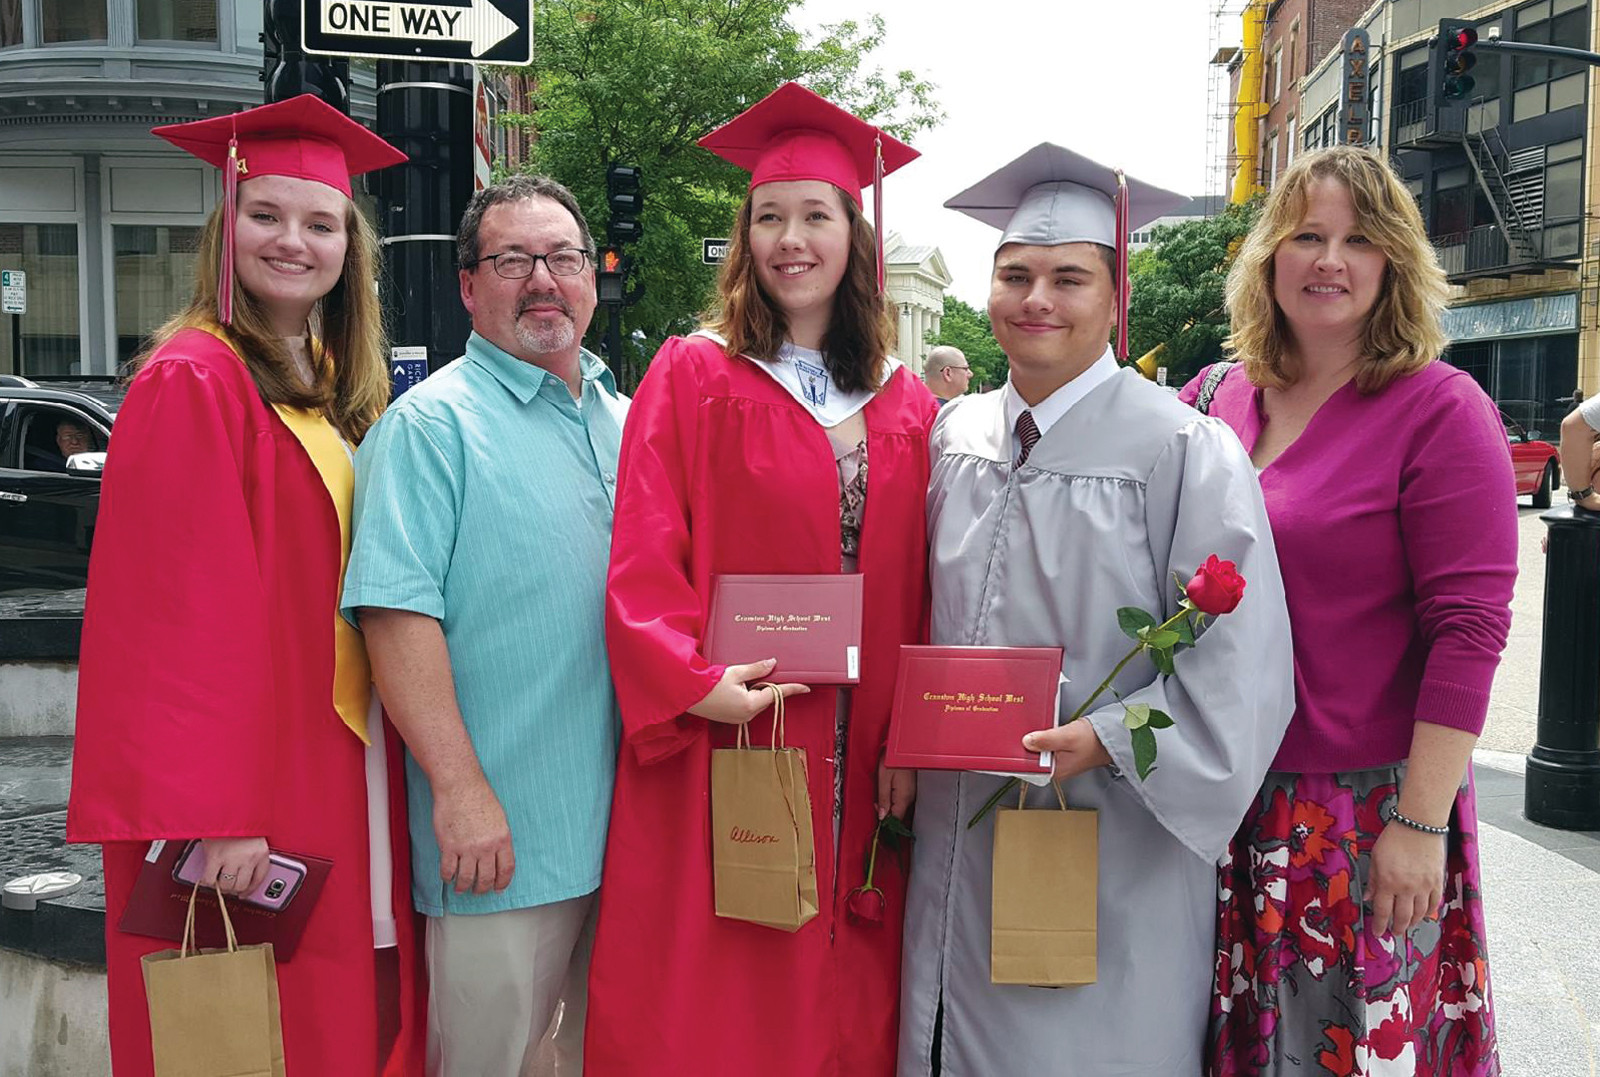 12 years of schooling have come to an end in Cranston for the triplets as they pose with Sue and Steve on graduation day.